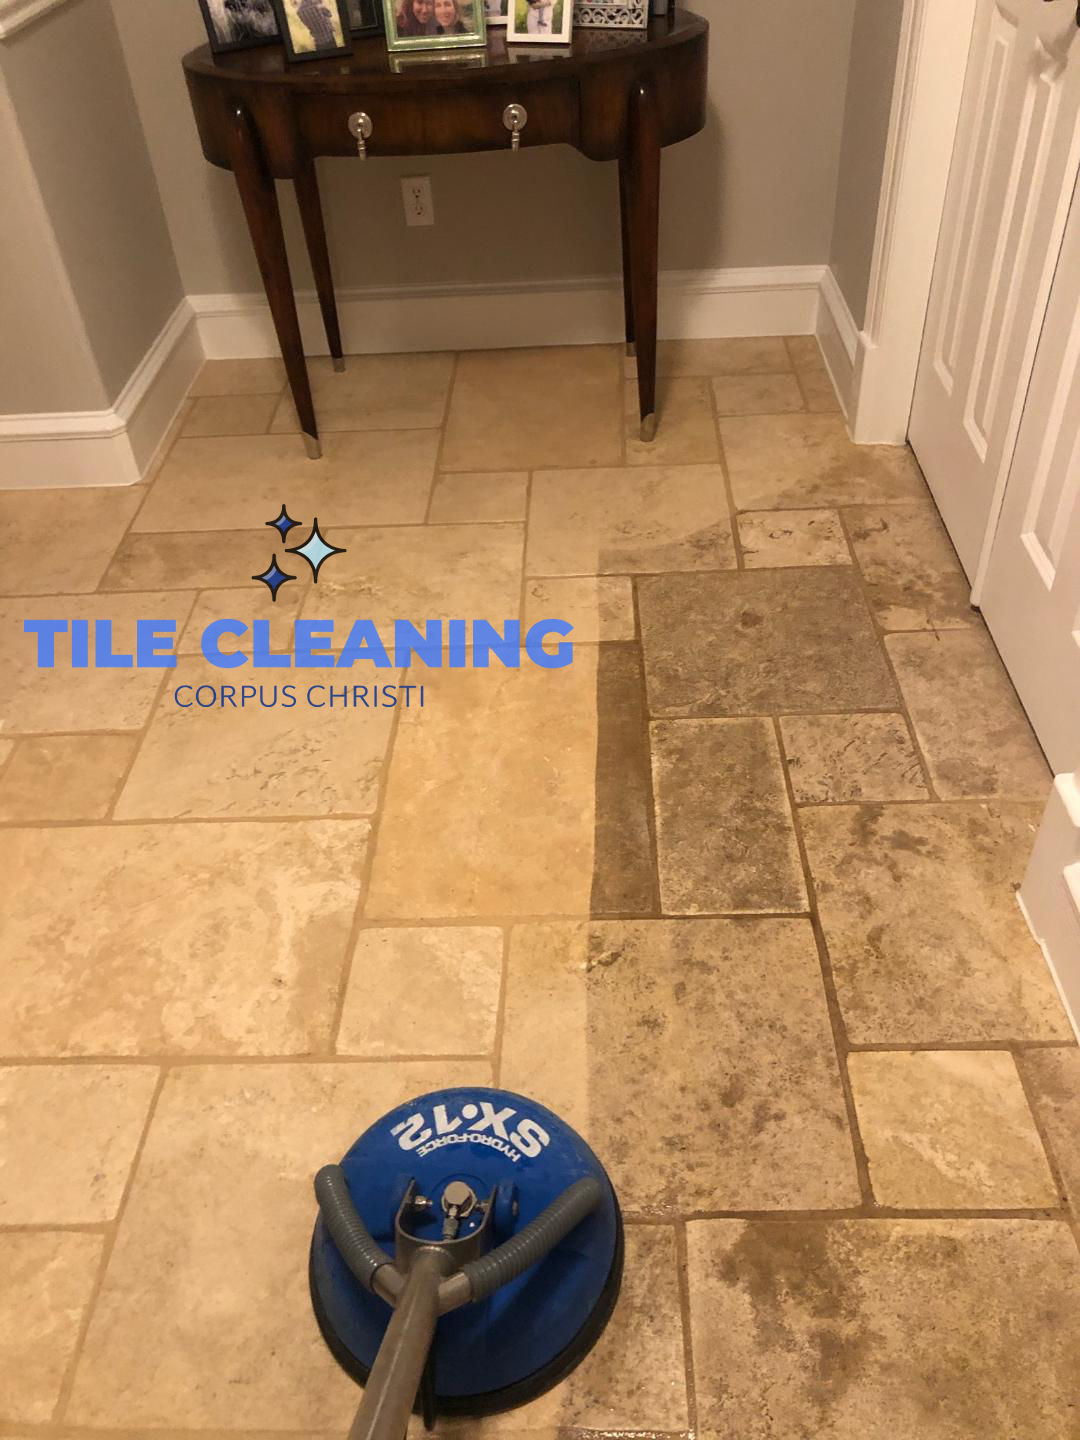 Cleaning Tile and Grout, Removing Dirt and Grime